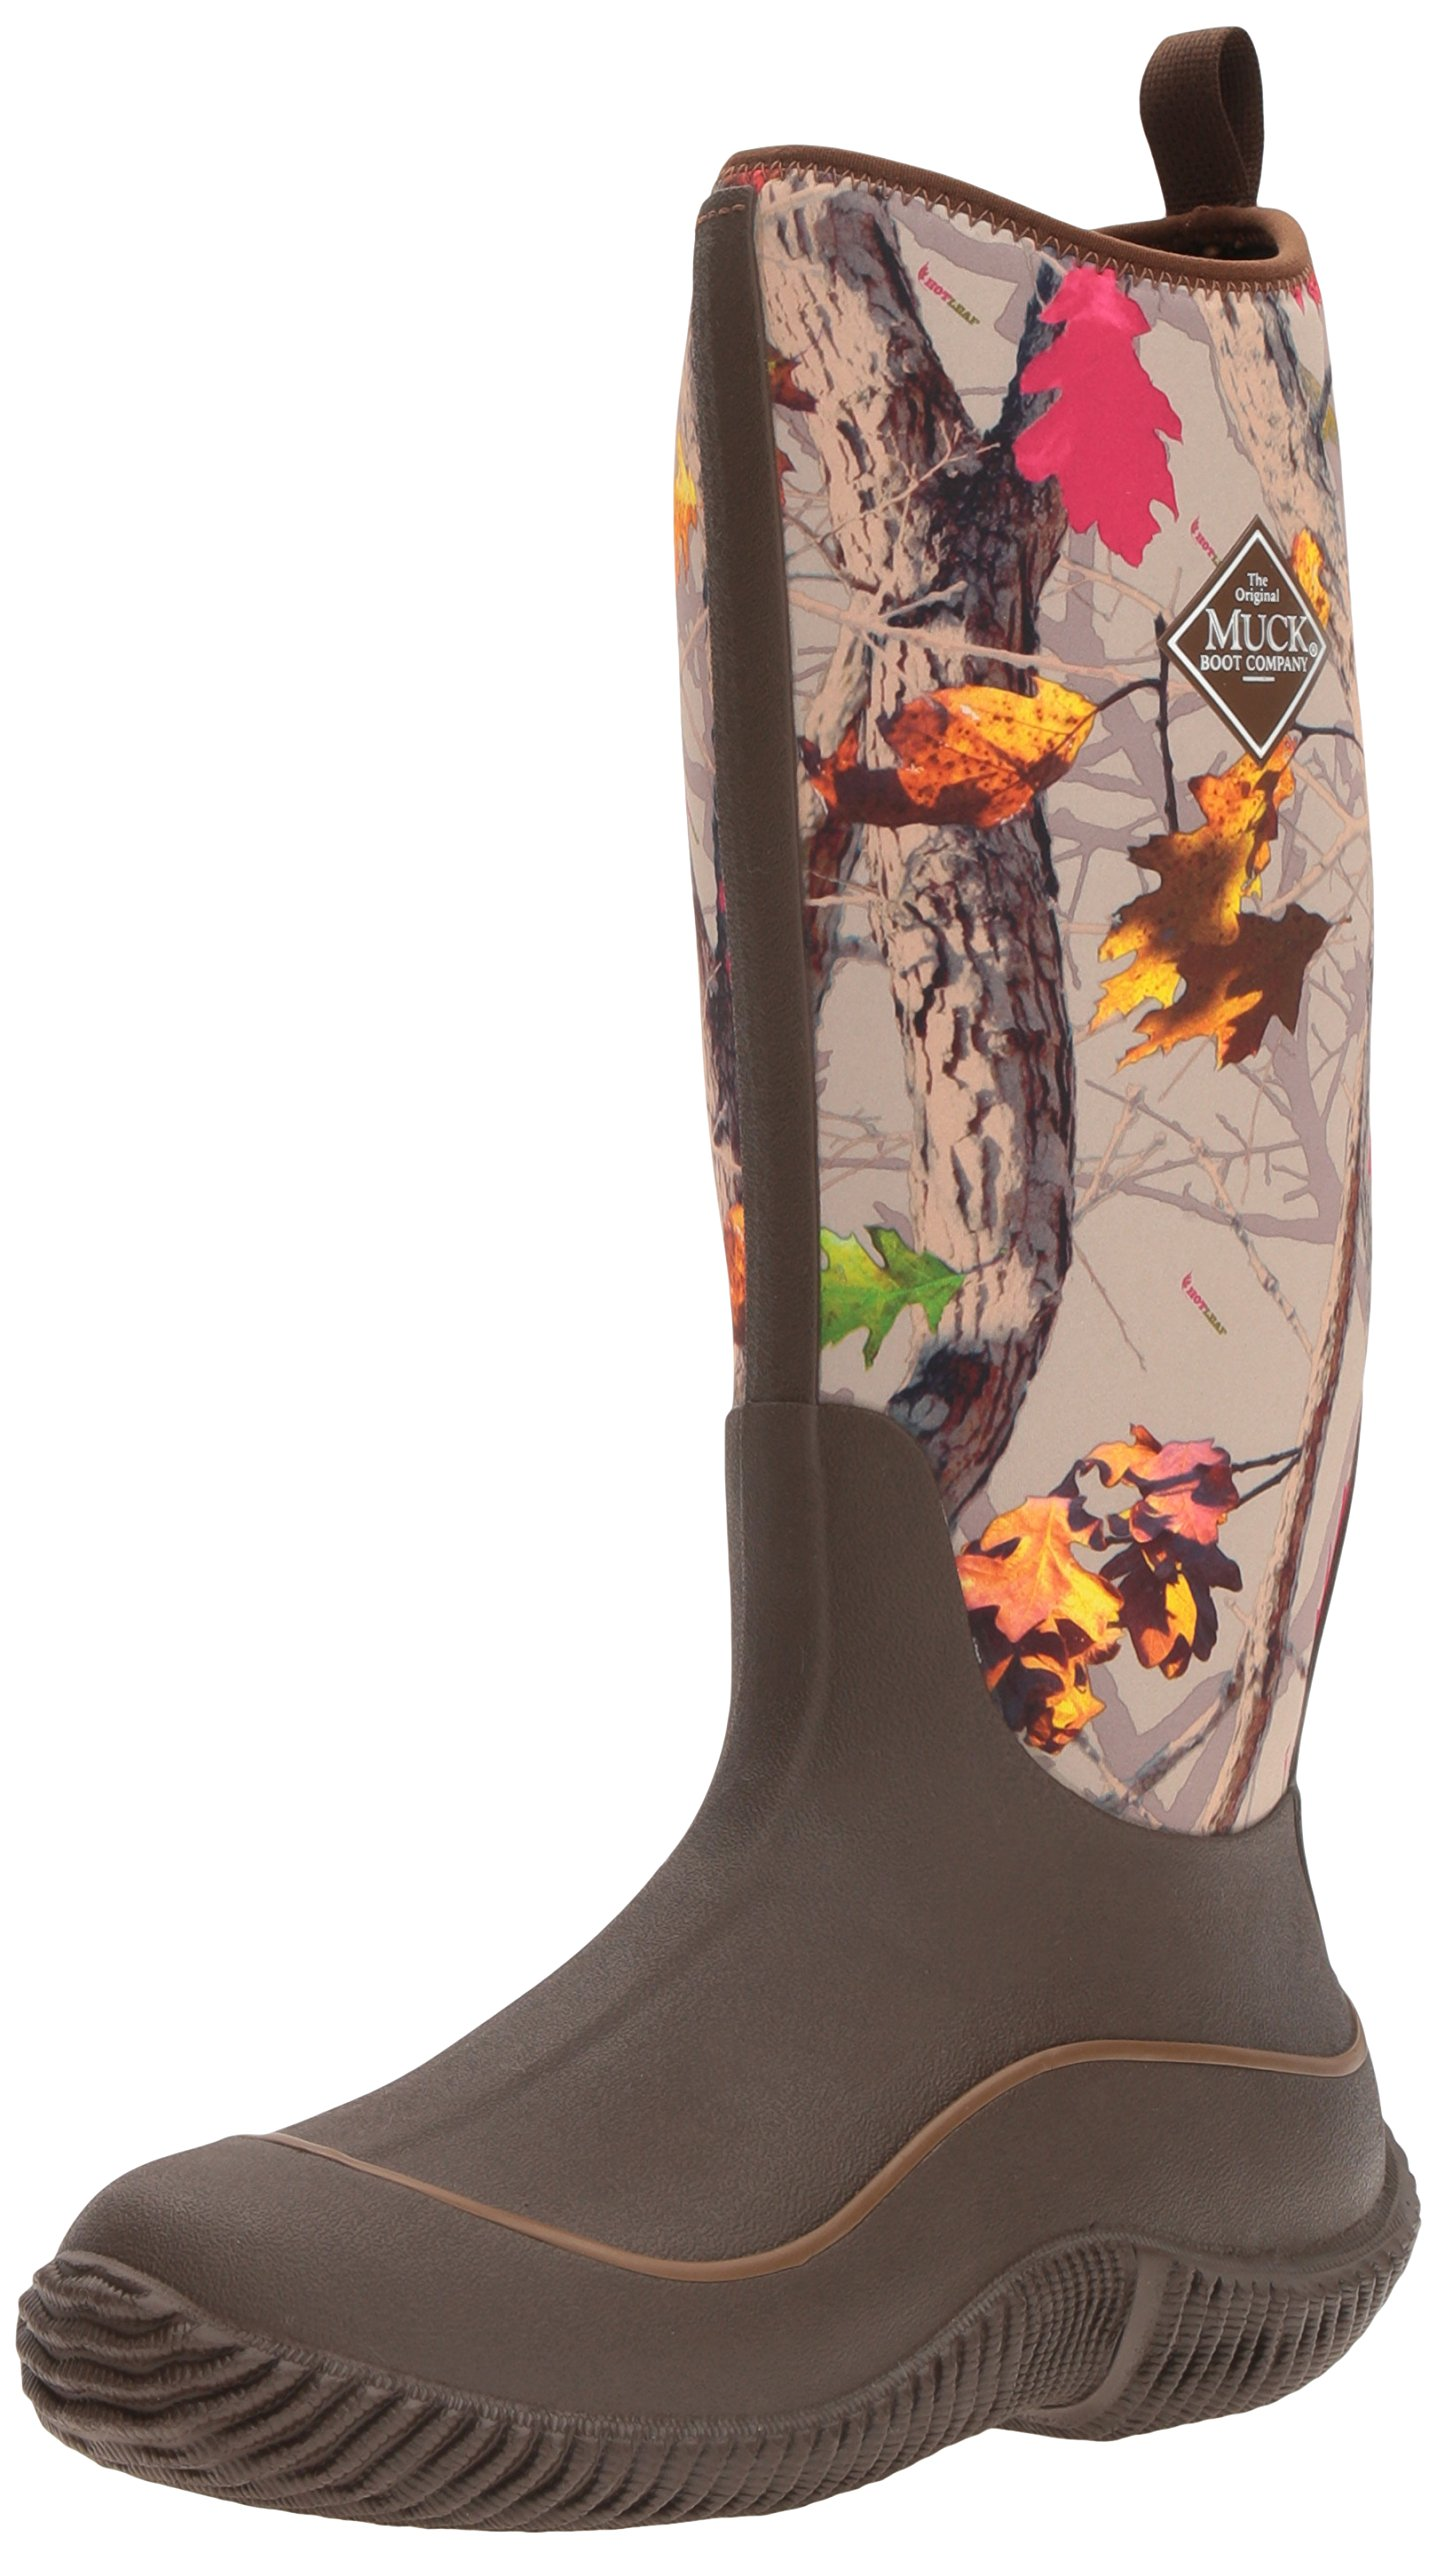 Muck Boot Women's Hale Snow Boot, Brown/Hot Leaf Camo, 8 M US by Muck Boot